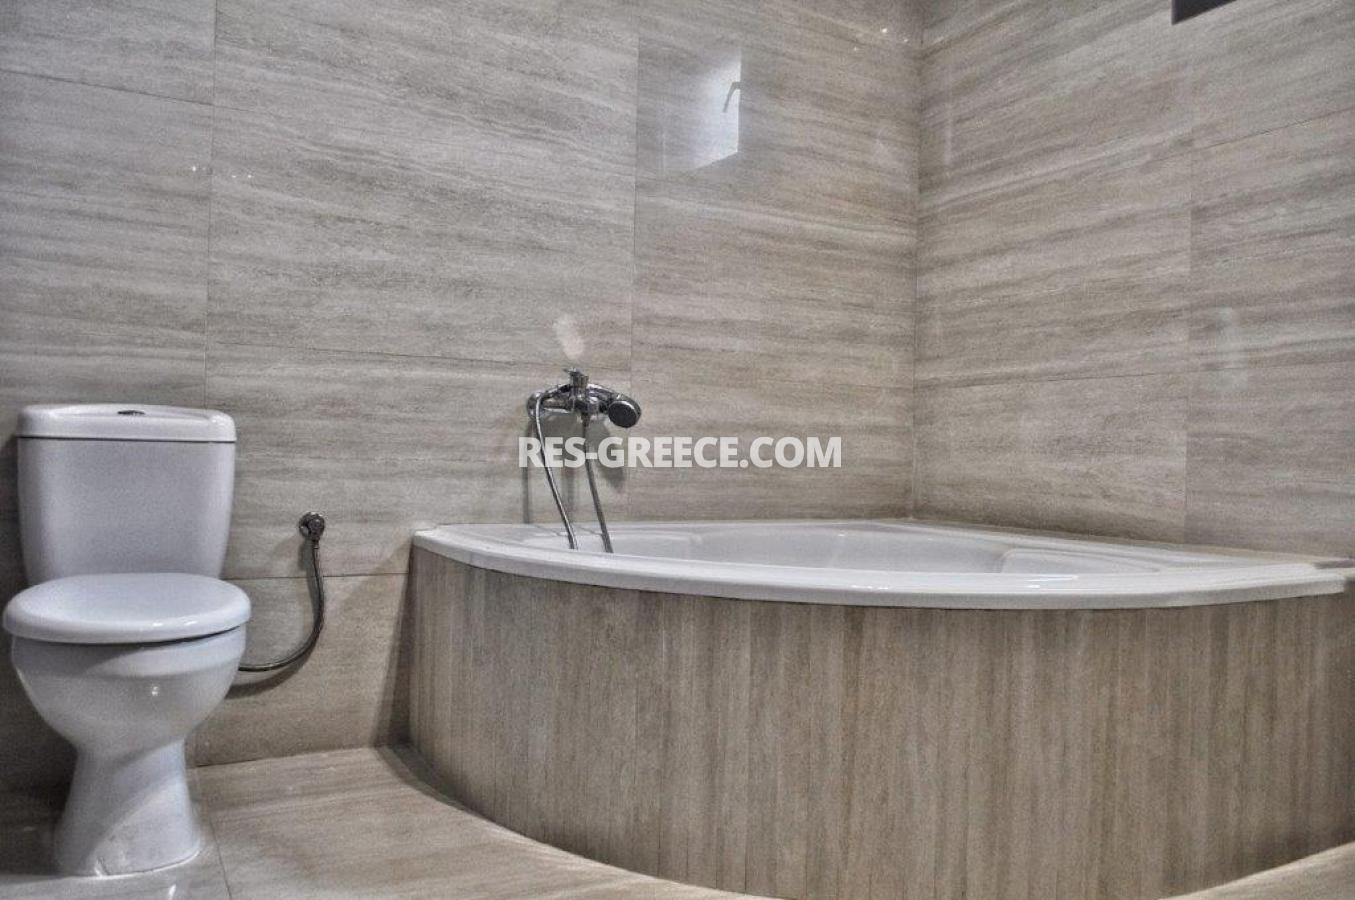 Delfini, Halkidiki-Kassandra, Greece - complex of 2 villas with panoramic view for sale - Photo 42